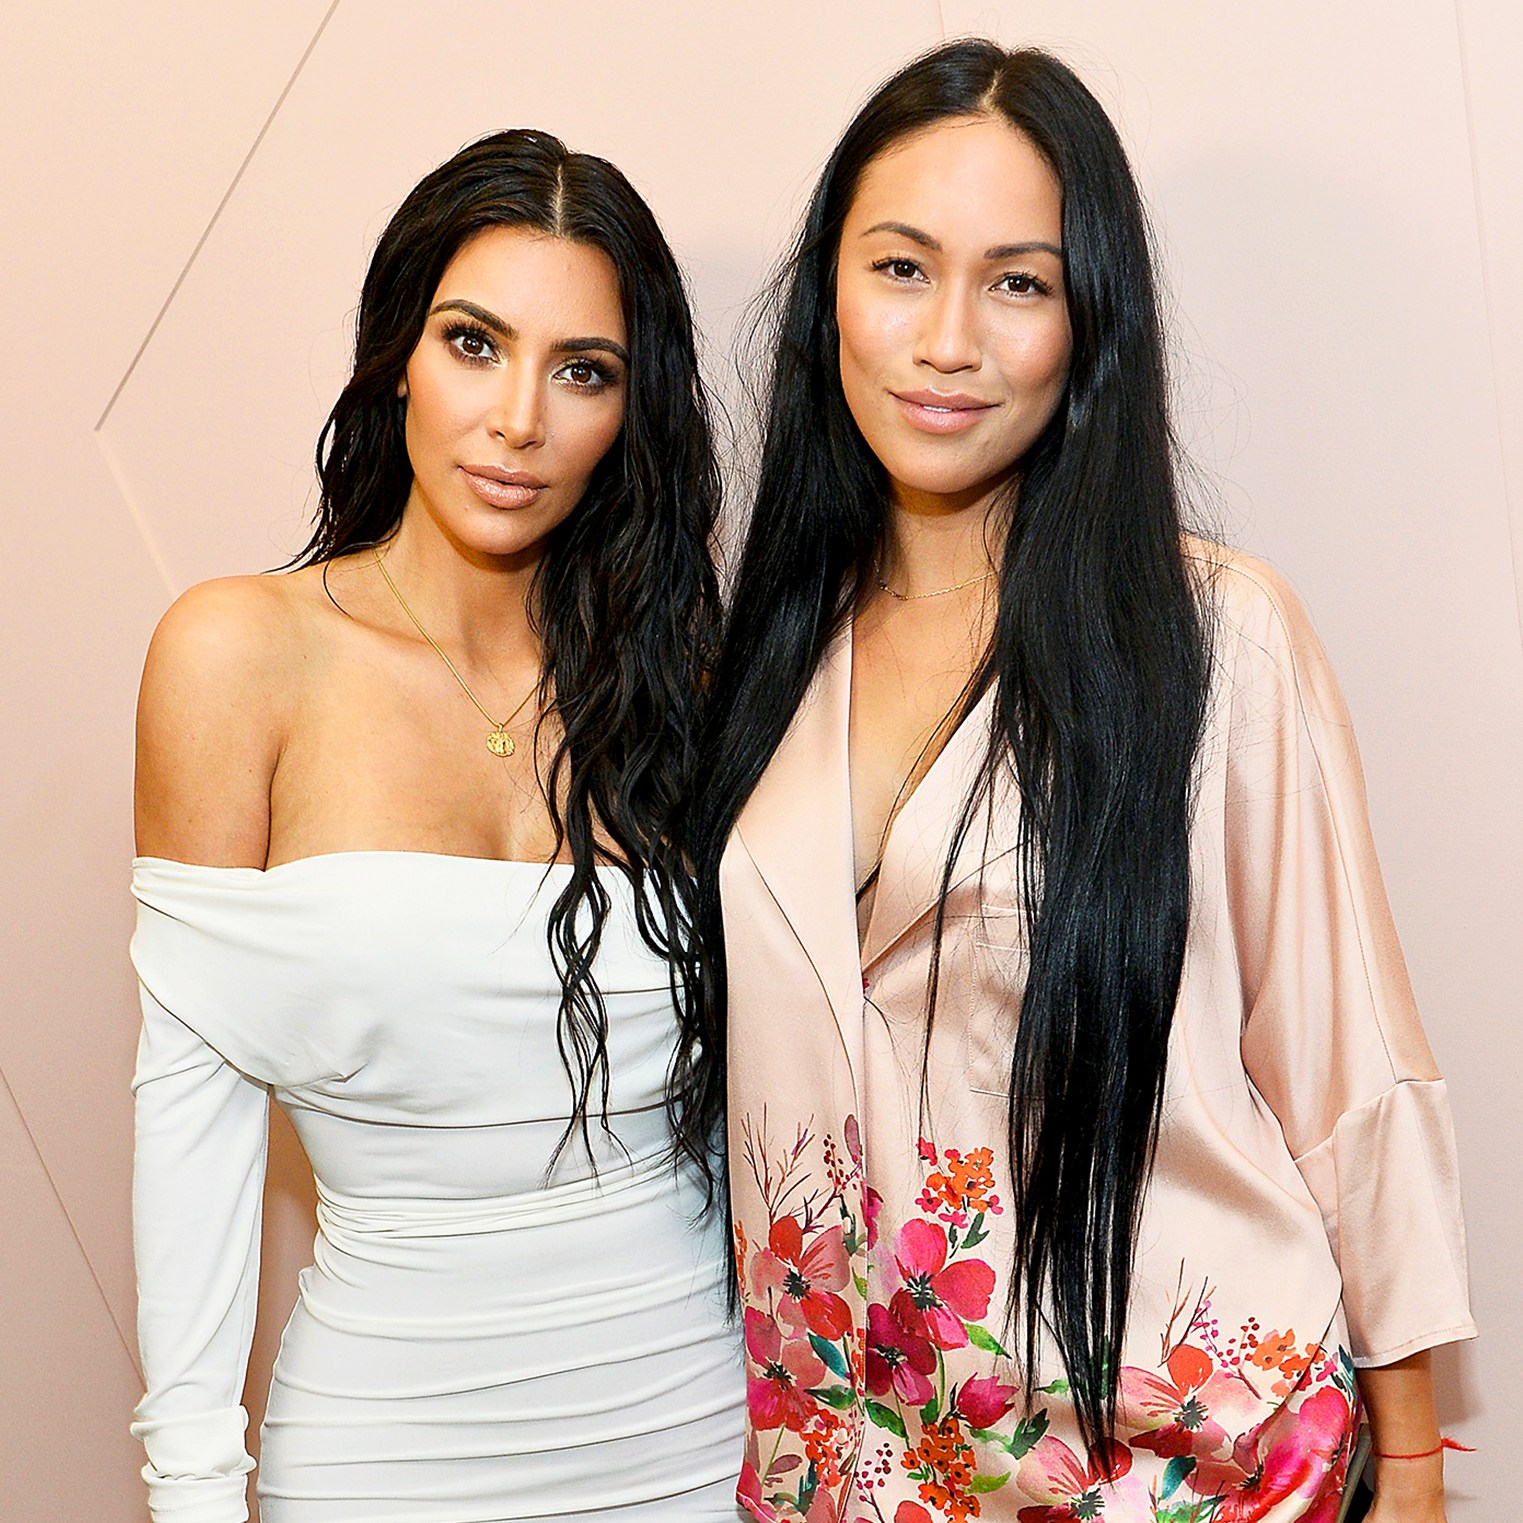 Kim Kardashian and Stephanie Sheppard celebrate The Launch Of KKW Beauty on June 20, 2017 in Los Angeles, California.